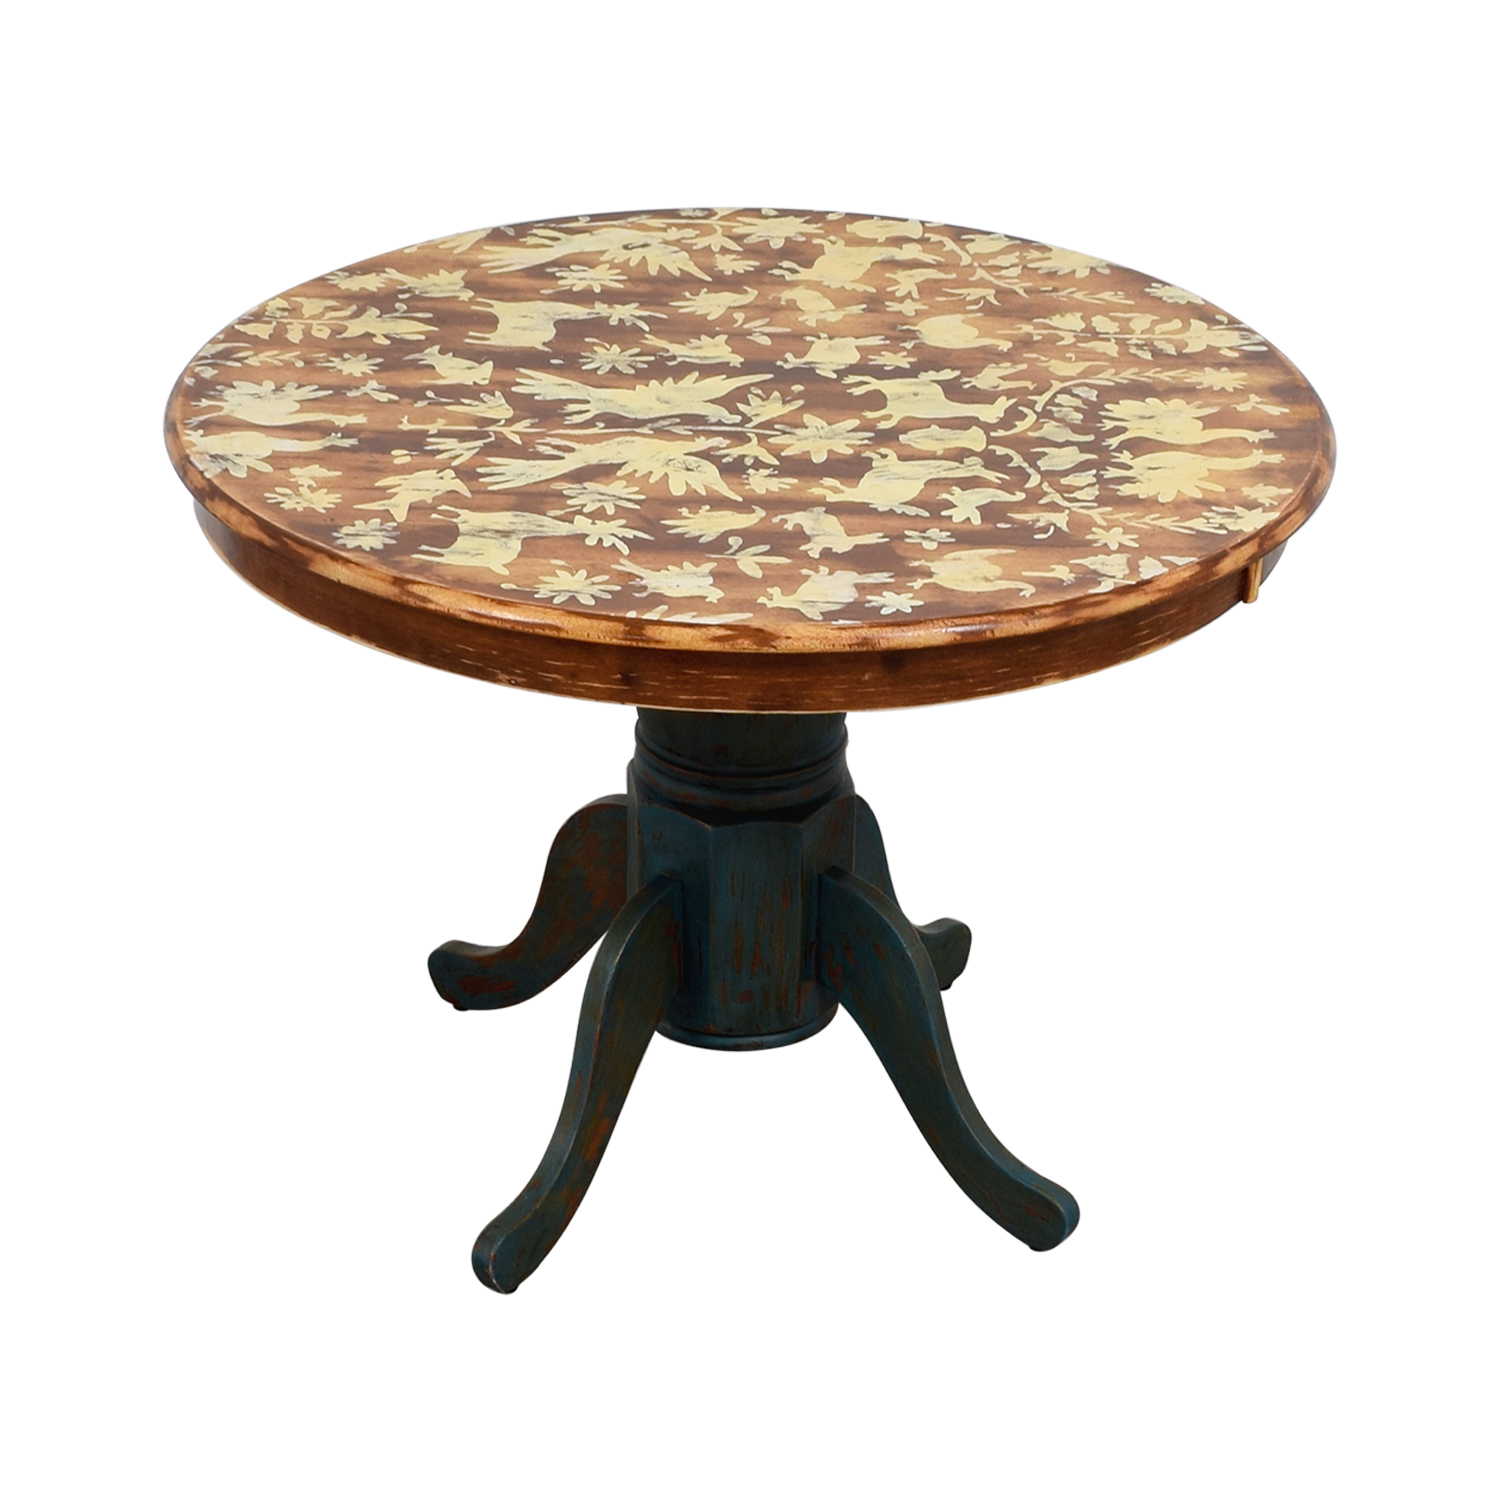 Vintage Hand-Stenciled Farmhouse Style Round Kitchen Table Dinner Tables